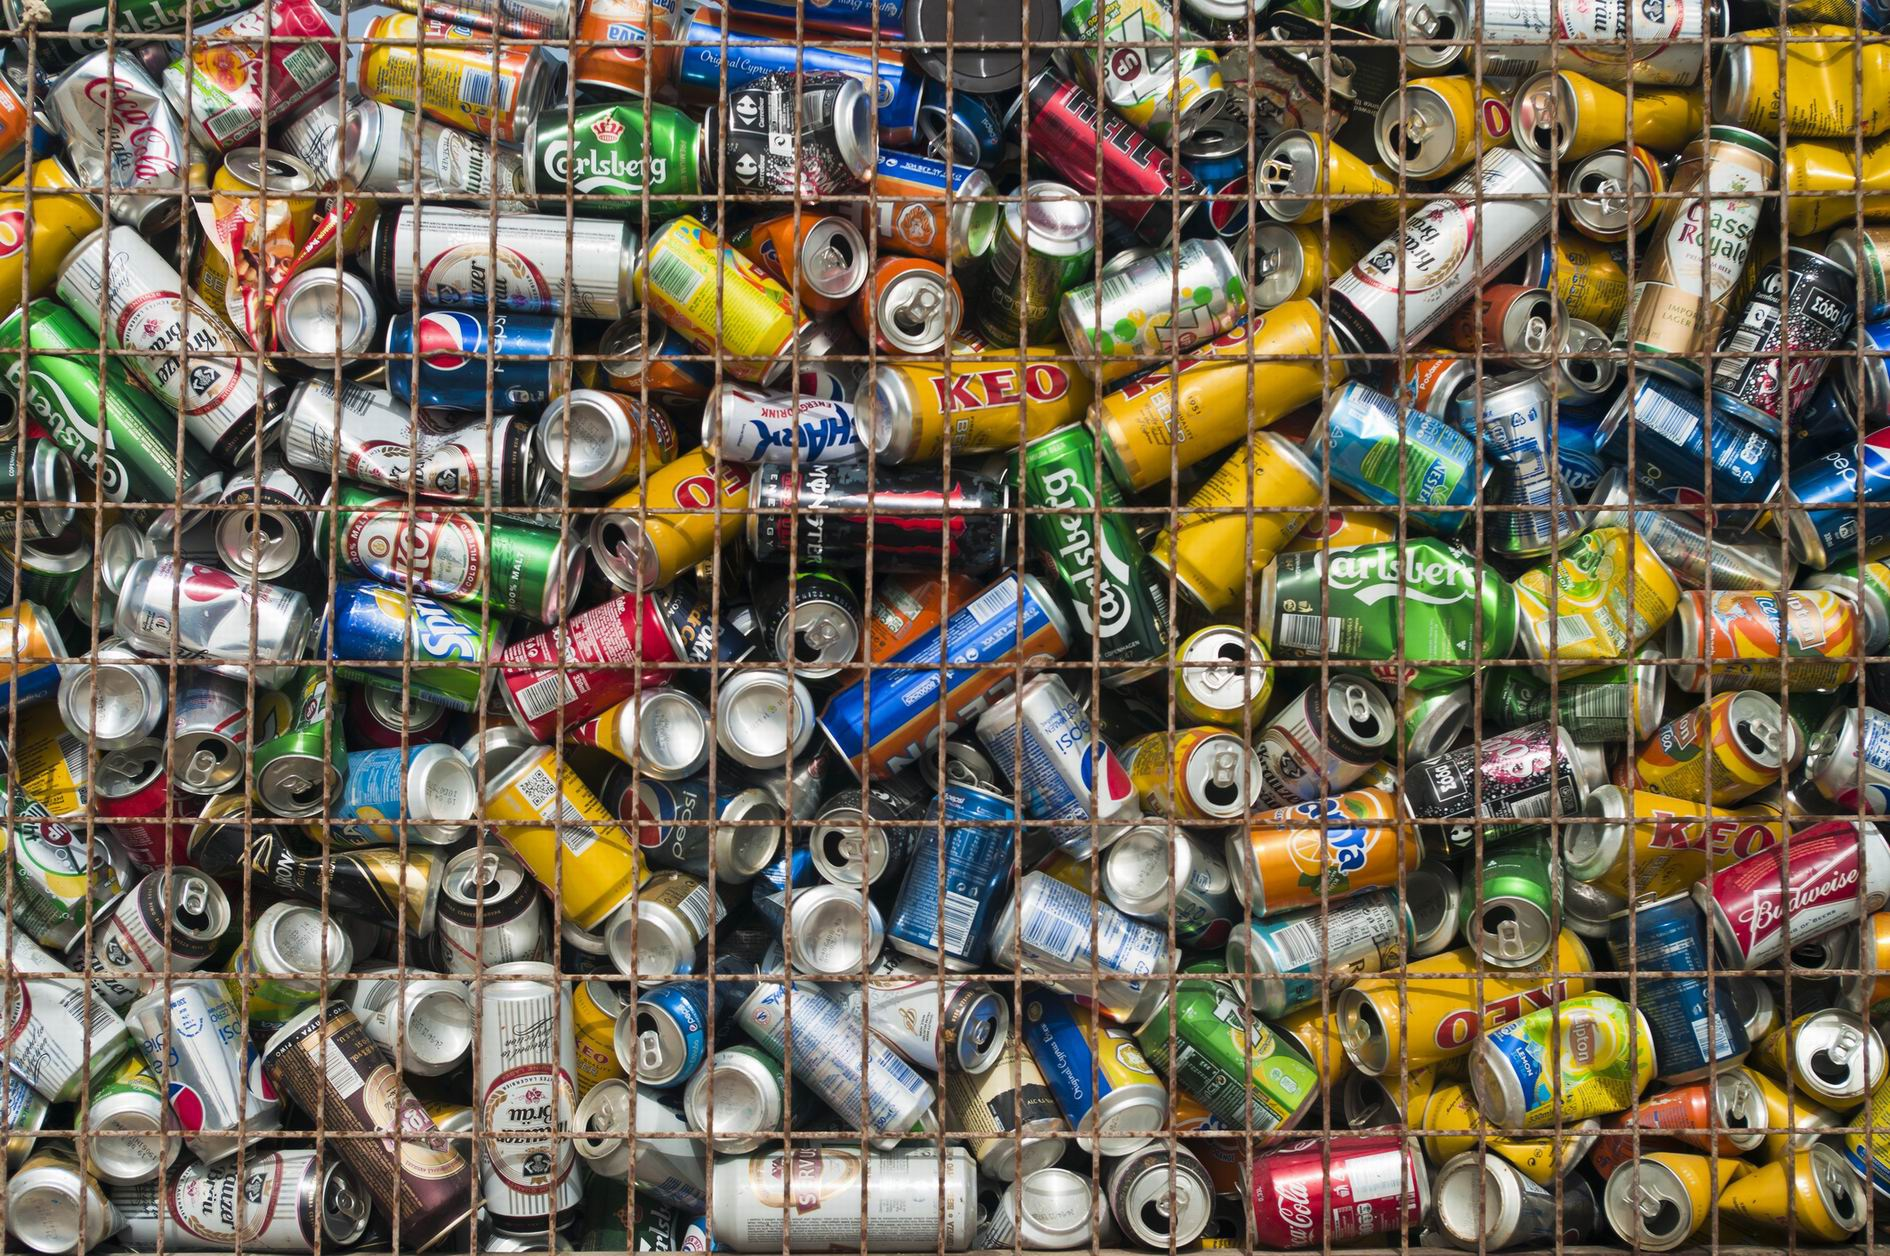 Cash for cans at Wanneroo Show